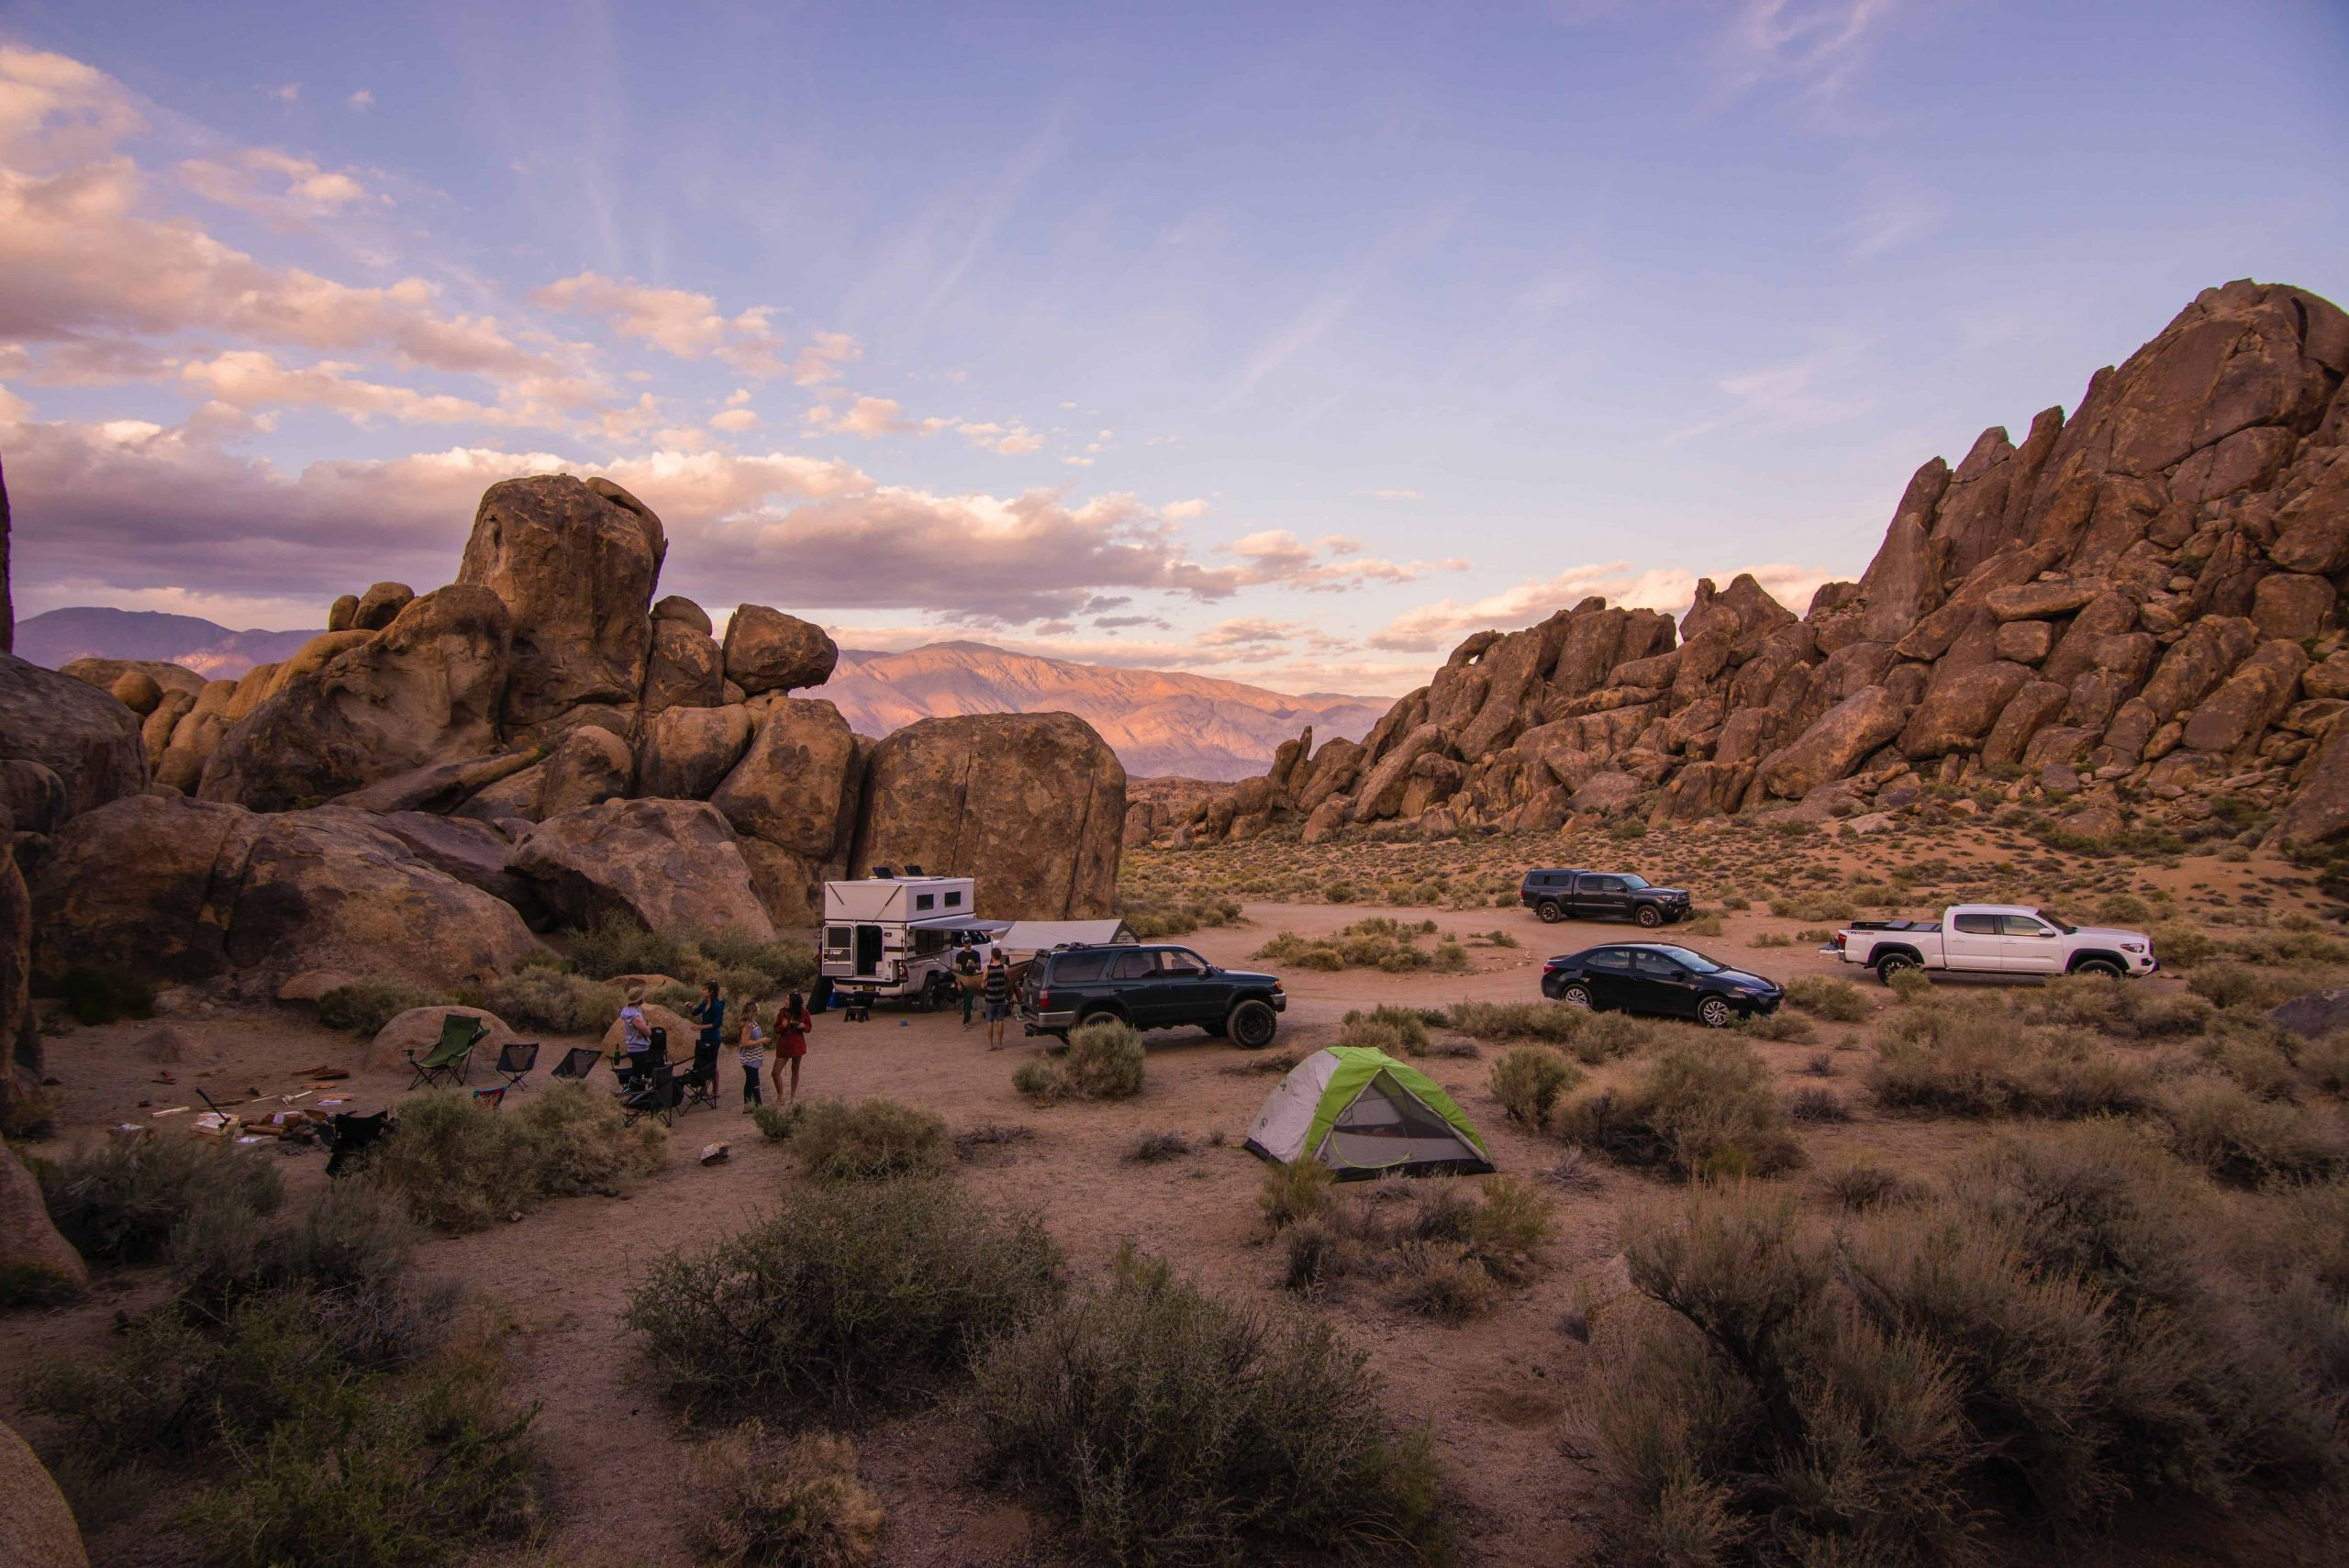 camping site in the desert